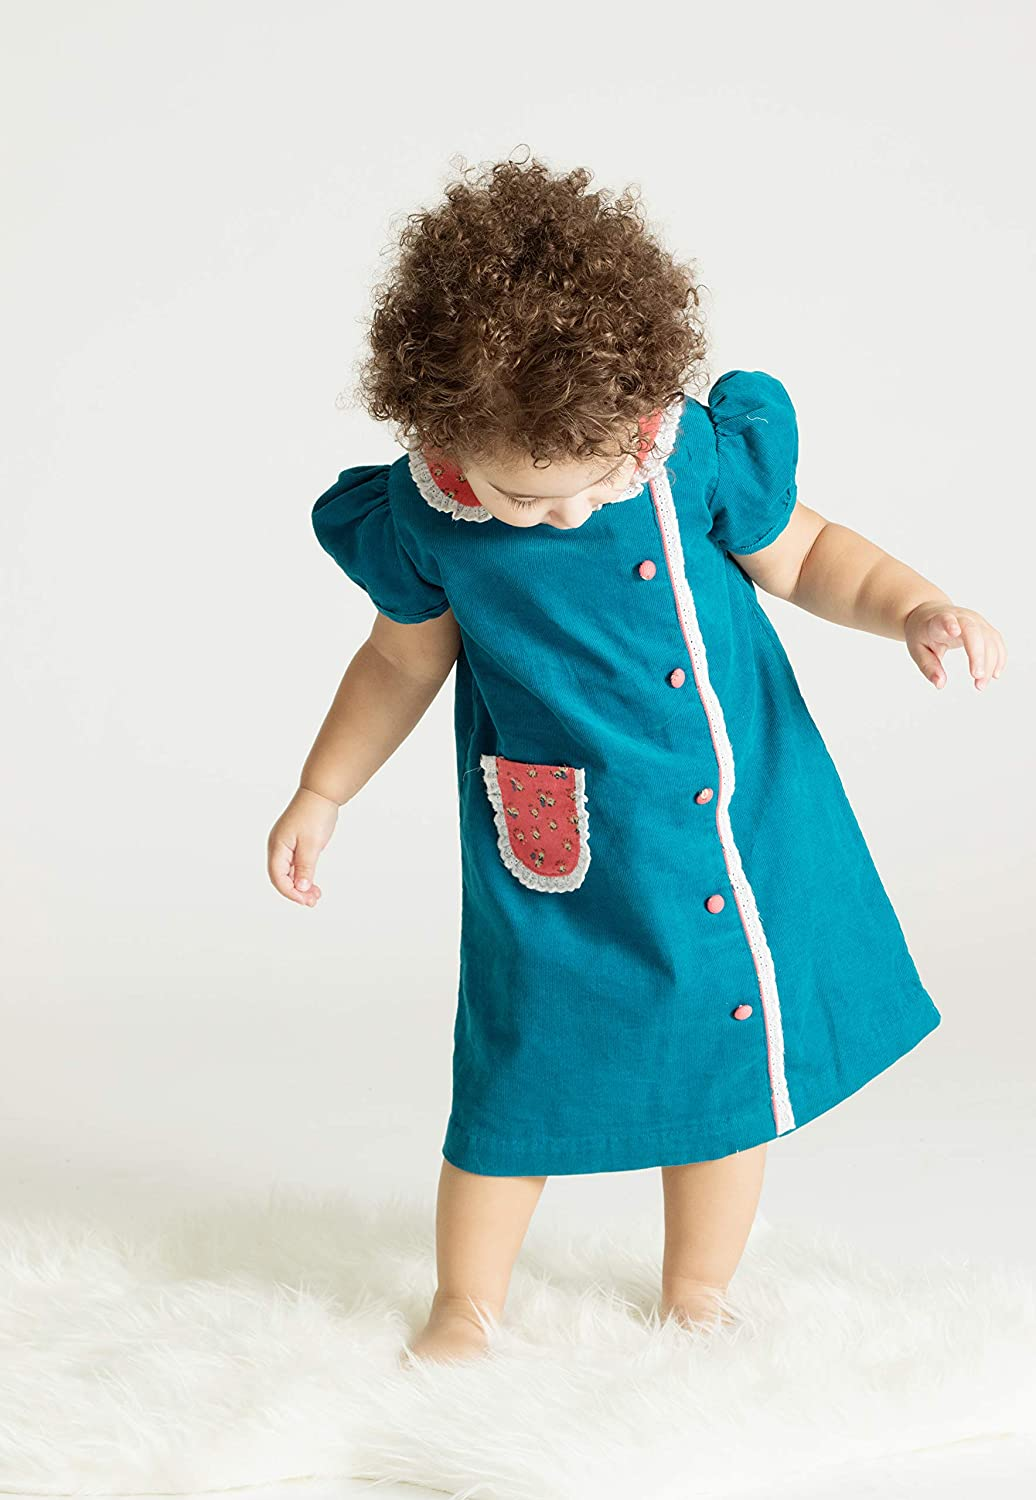 Easy Retro Halloween Costumes – Last Minute Ideas Carriage Boutique Girls Short Sleeve Blue A-Line Dress $46.00 AT vintagedancer.com